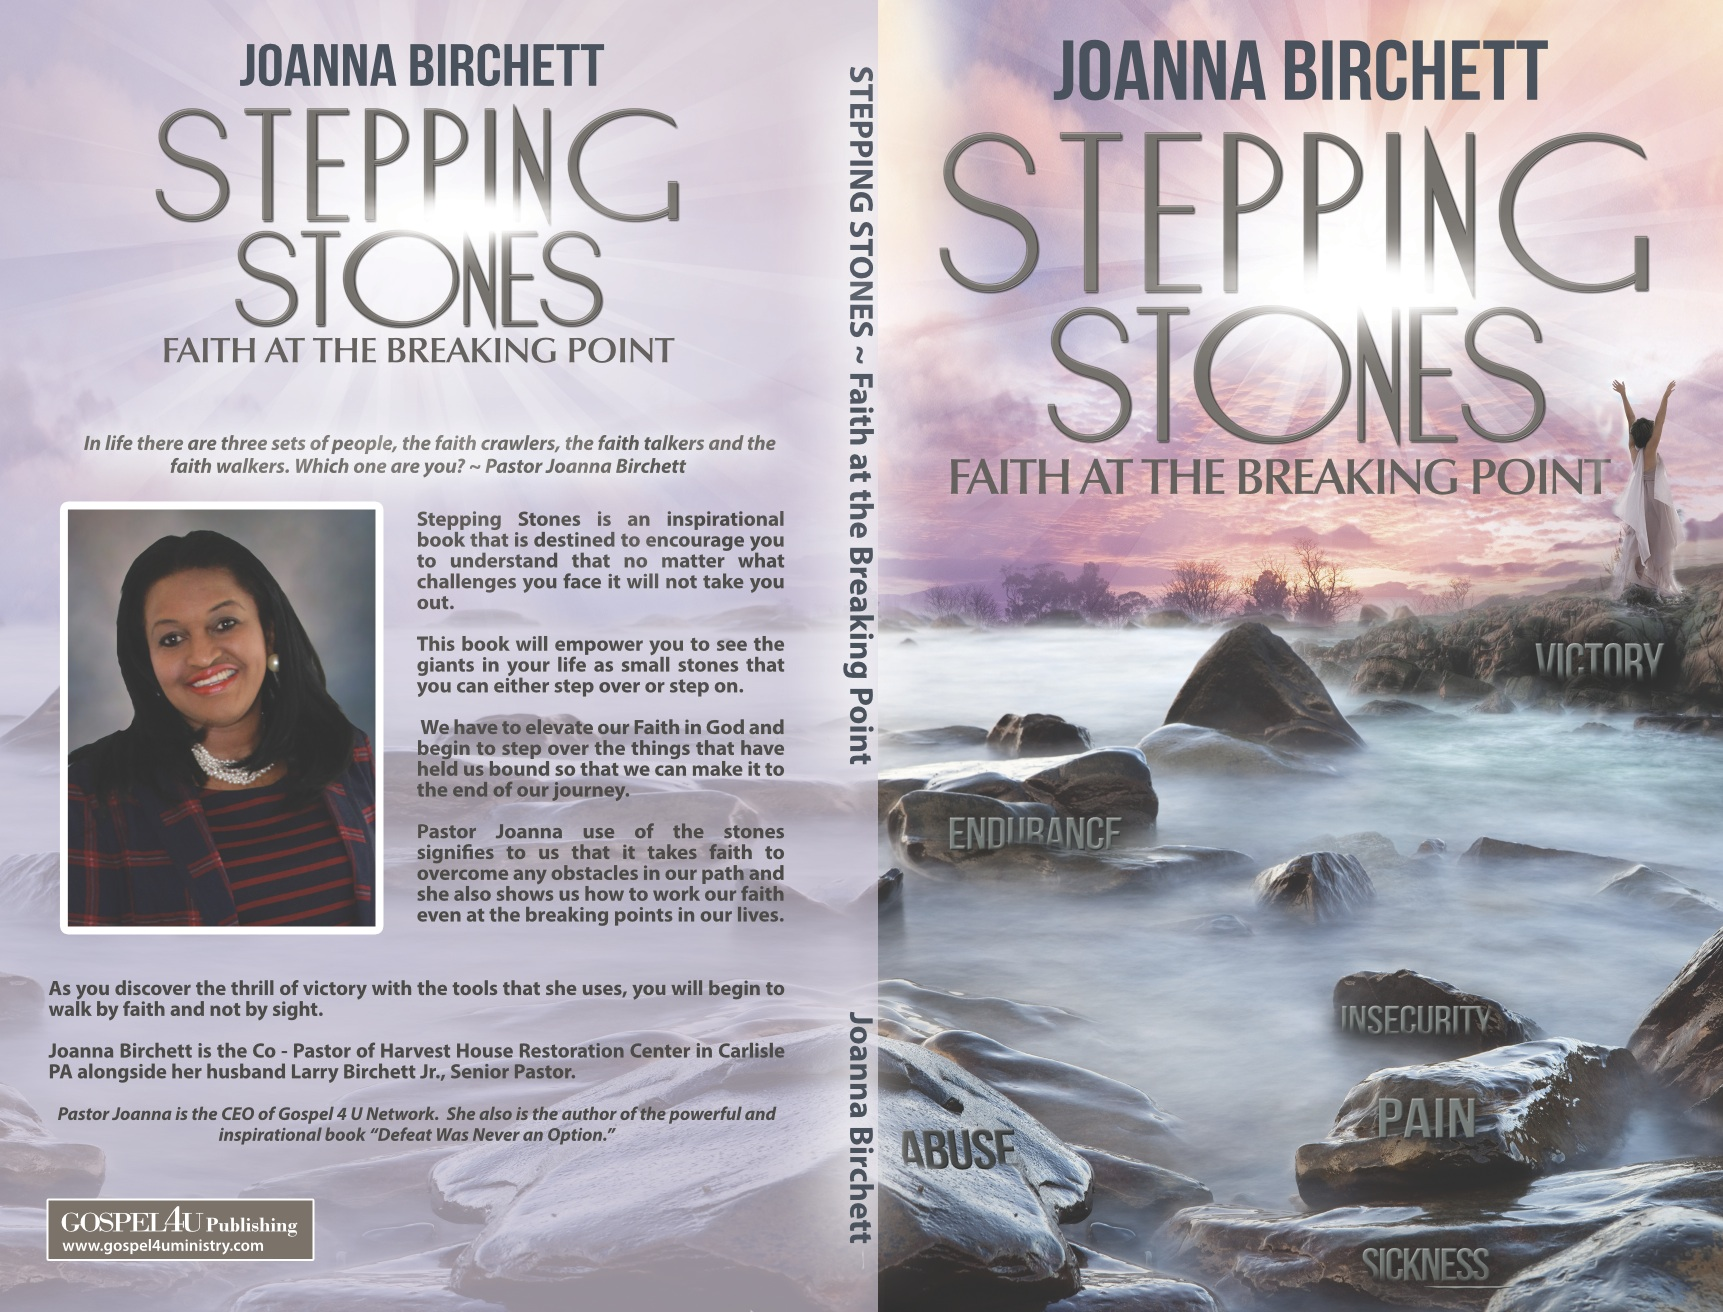 Stepping Stones: Faith At The Breaking Point